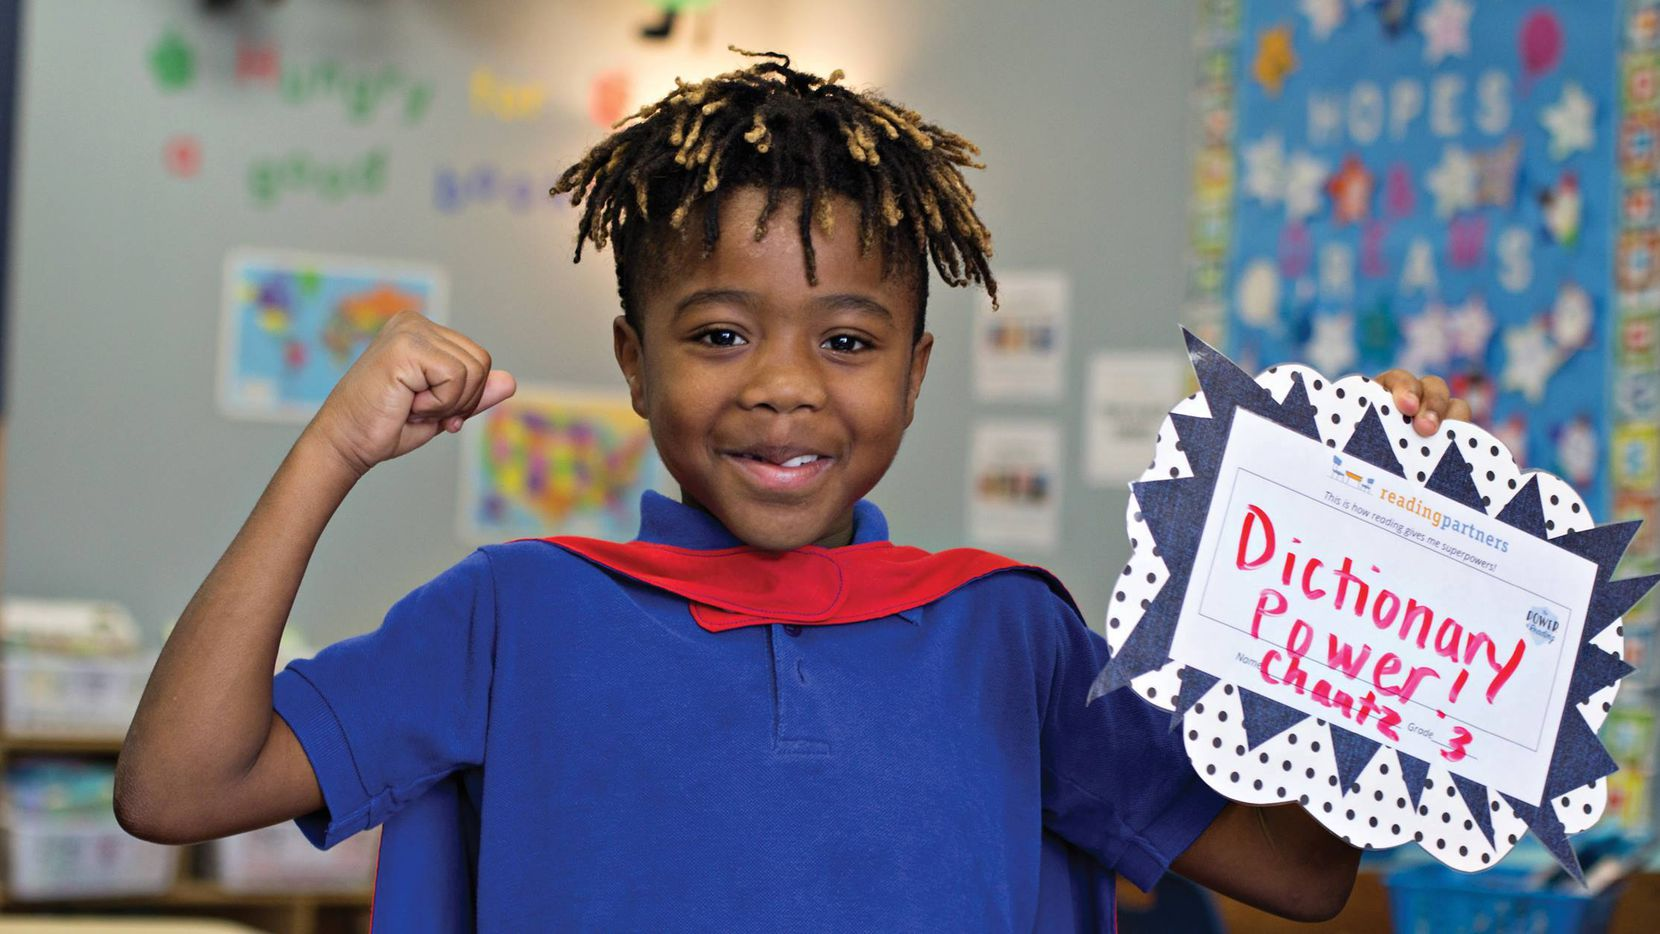 Reading Partners has been helping low-income students in Dallas and Fort Worth ISDs become better readers since 2012.